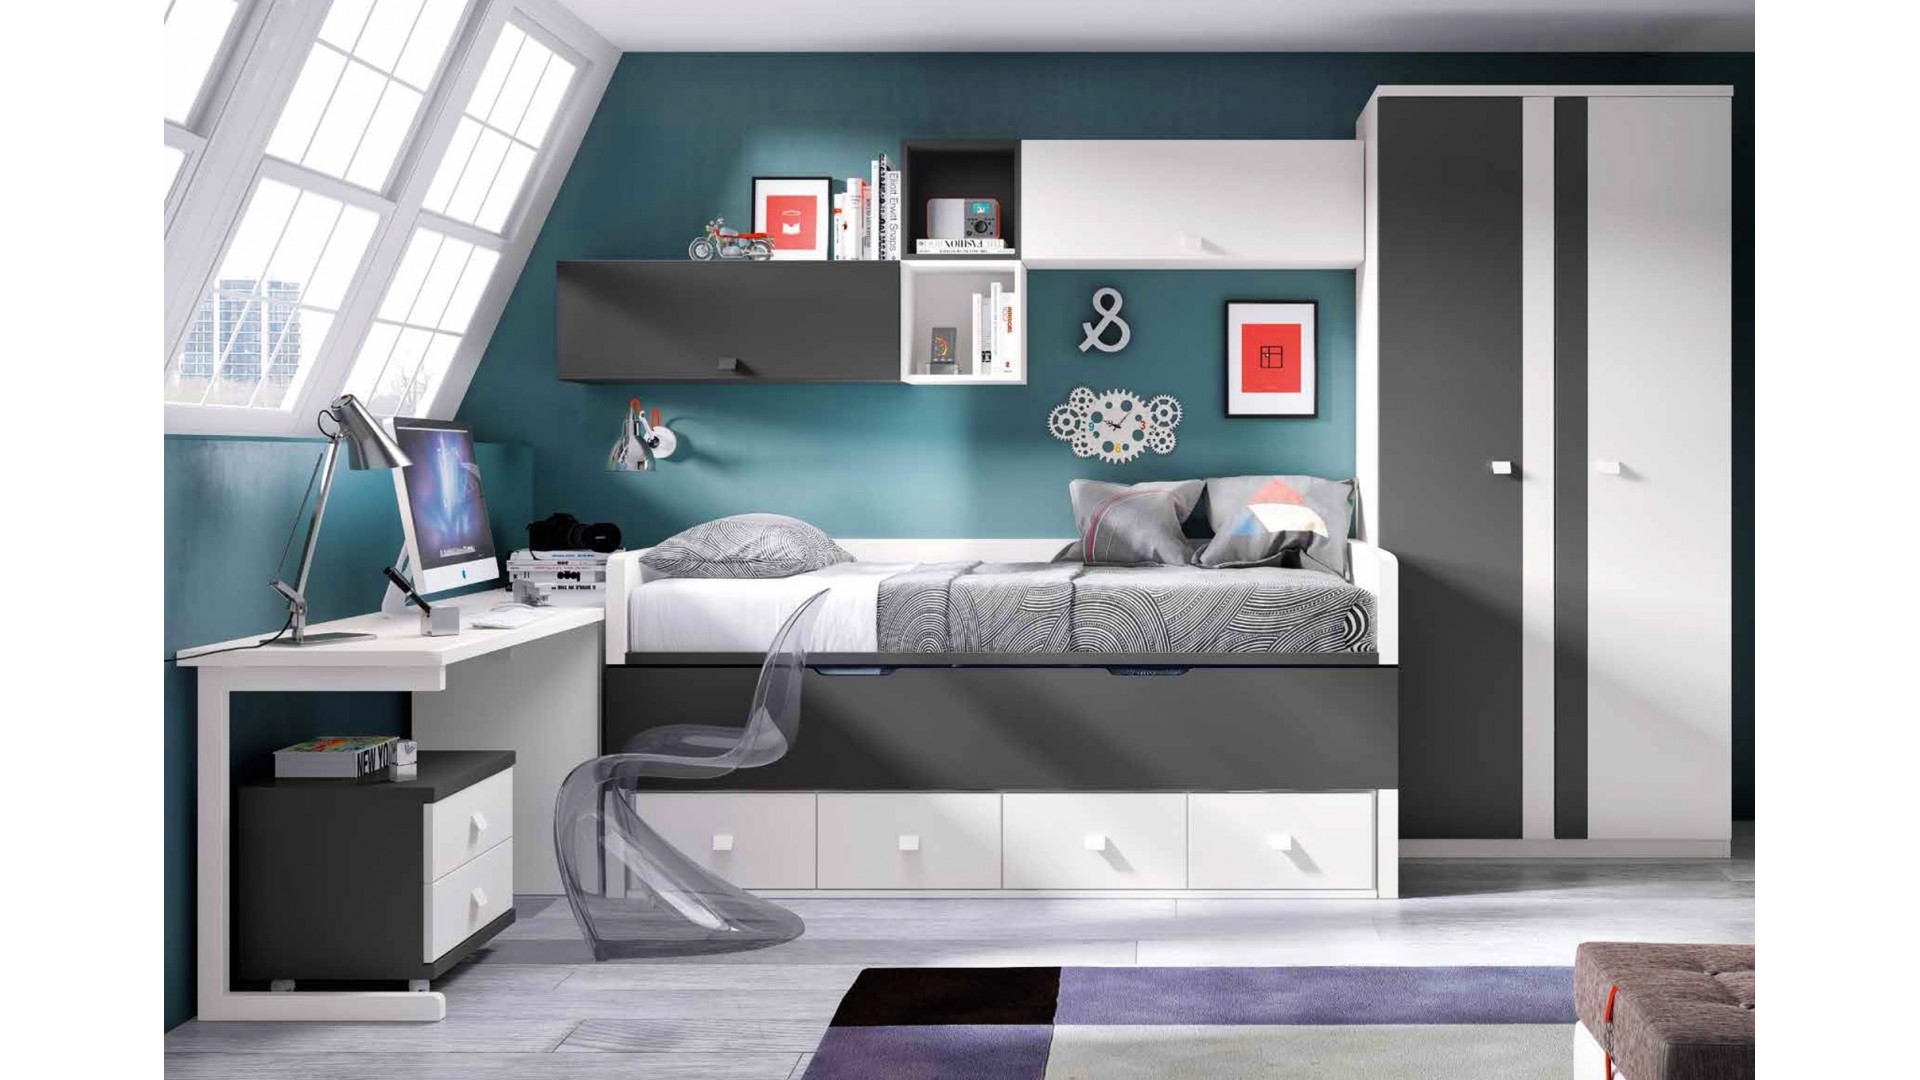 chambre ado garcon ultra moderne personnaliser glicerio so nuit. Black Bedroom Furniture Sets. Home Design Ideas